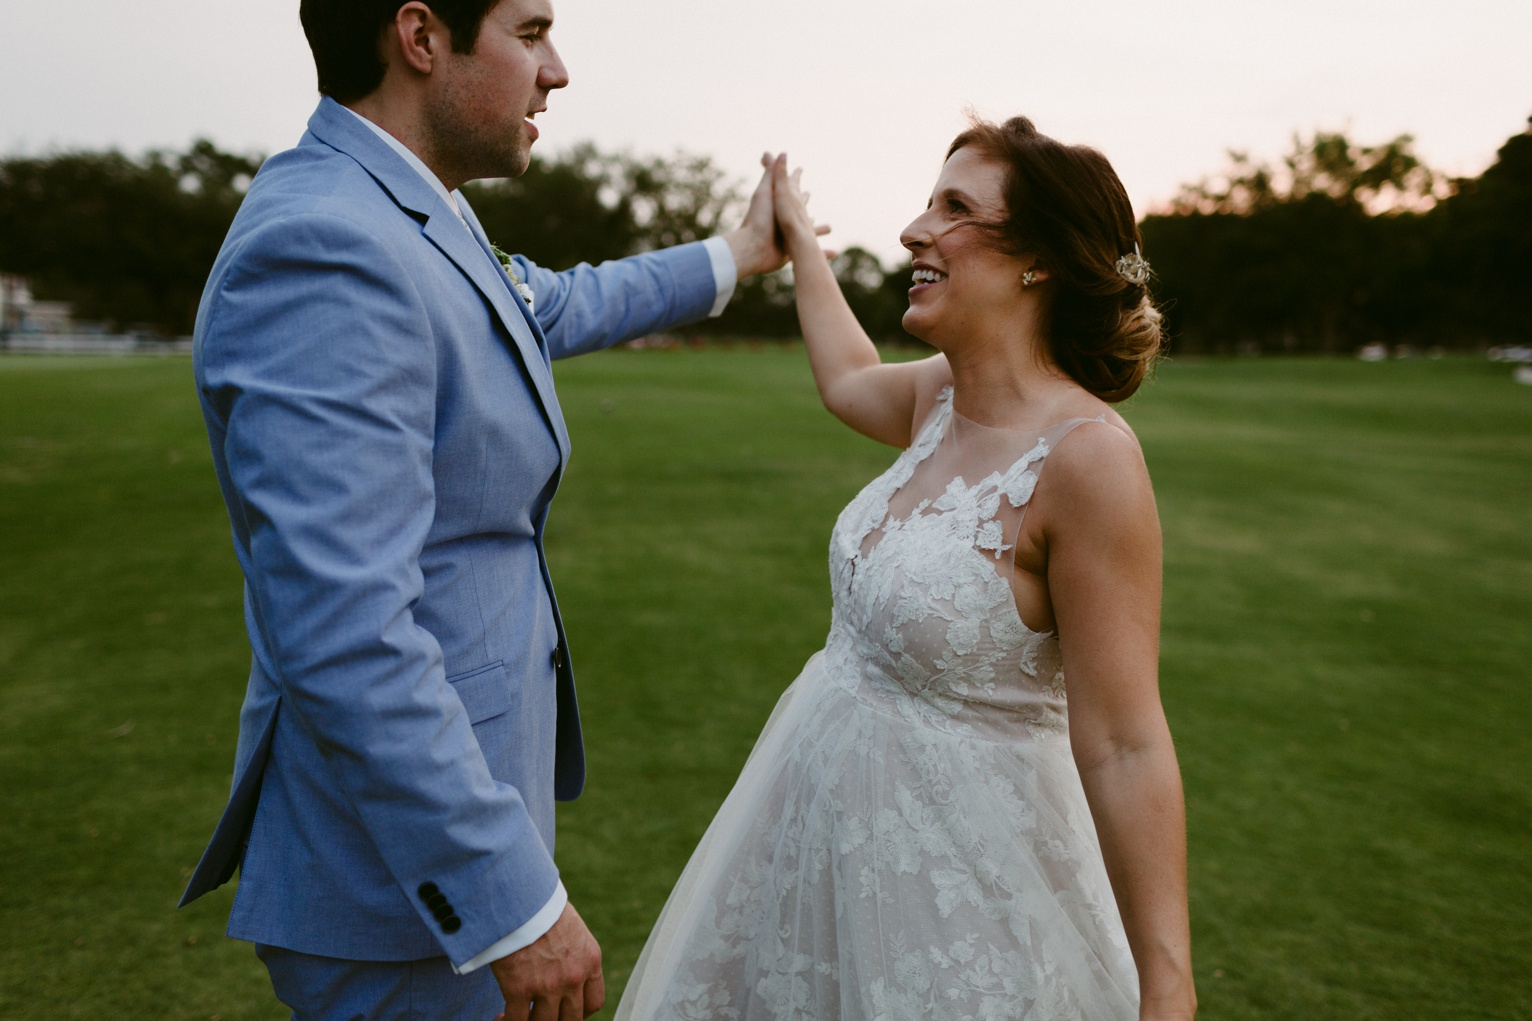 Dreamtownco.com_blog_Nick&Lindsay_Wedding_0143.jpg